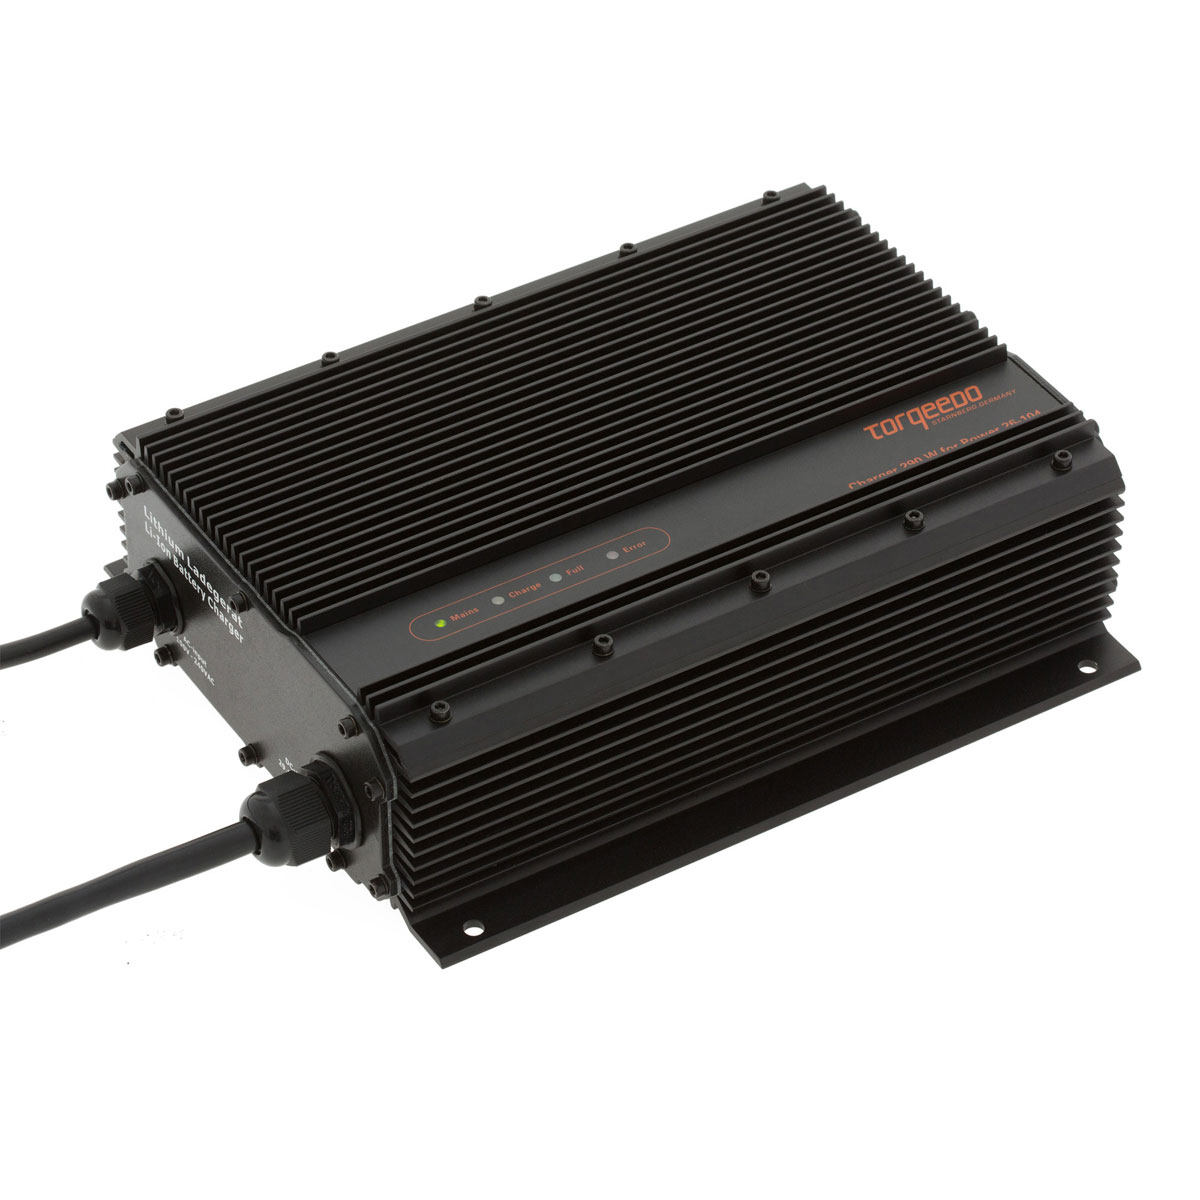 Torqeedo Charger Power 24-3500 (26-104)